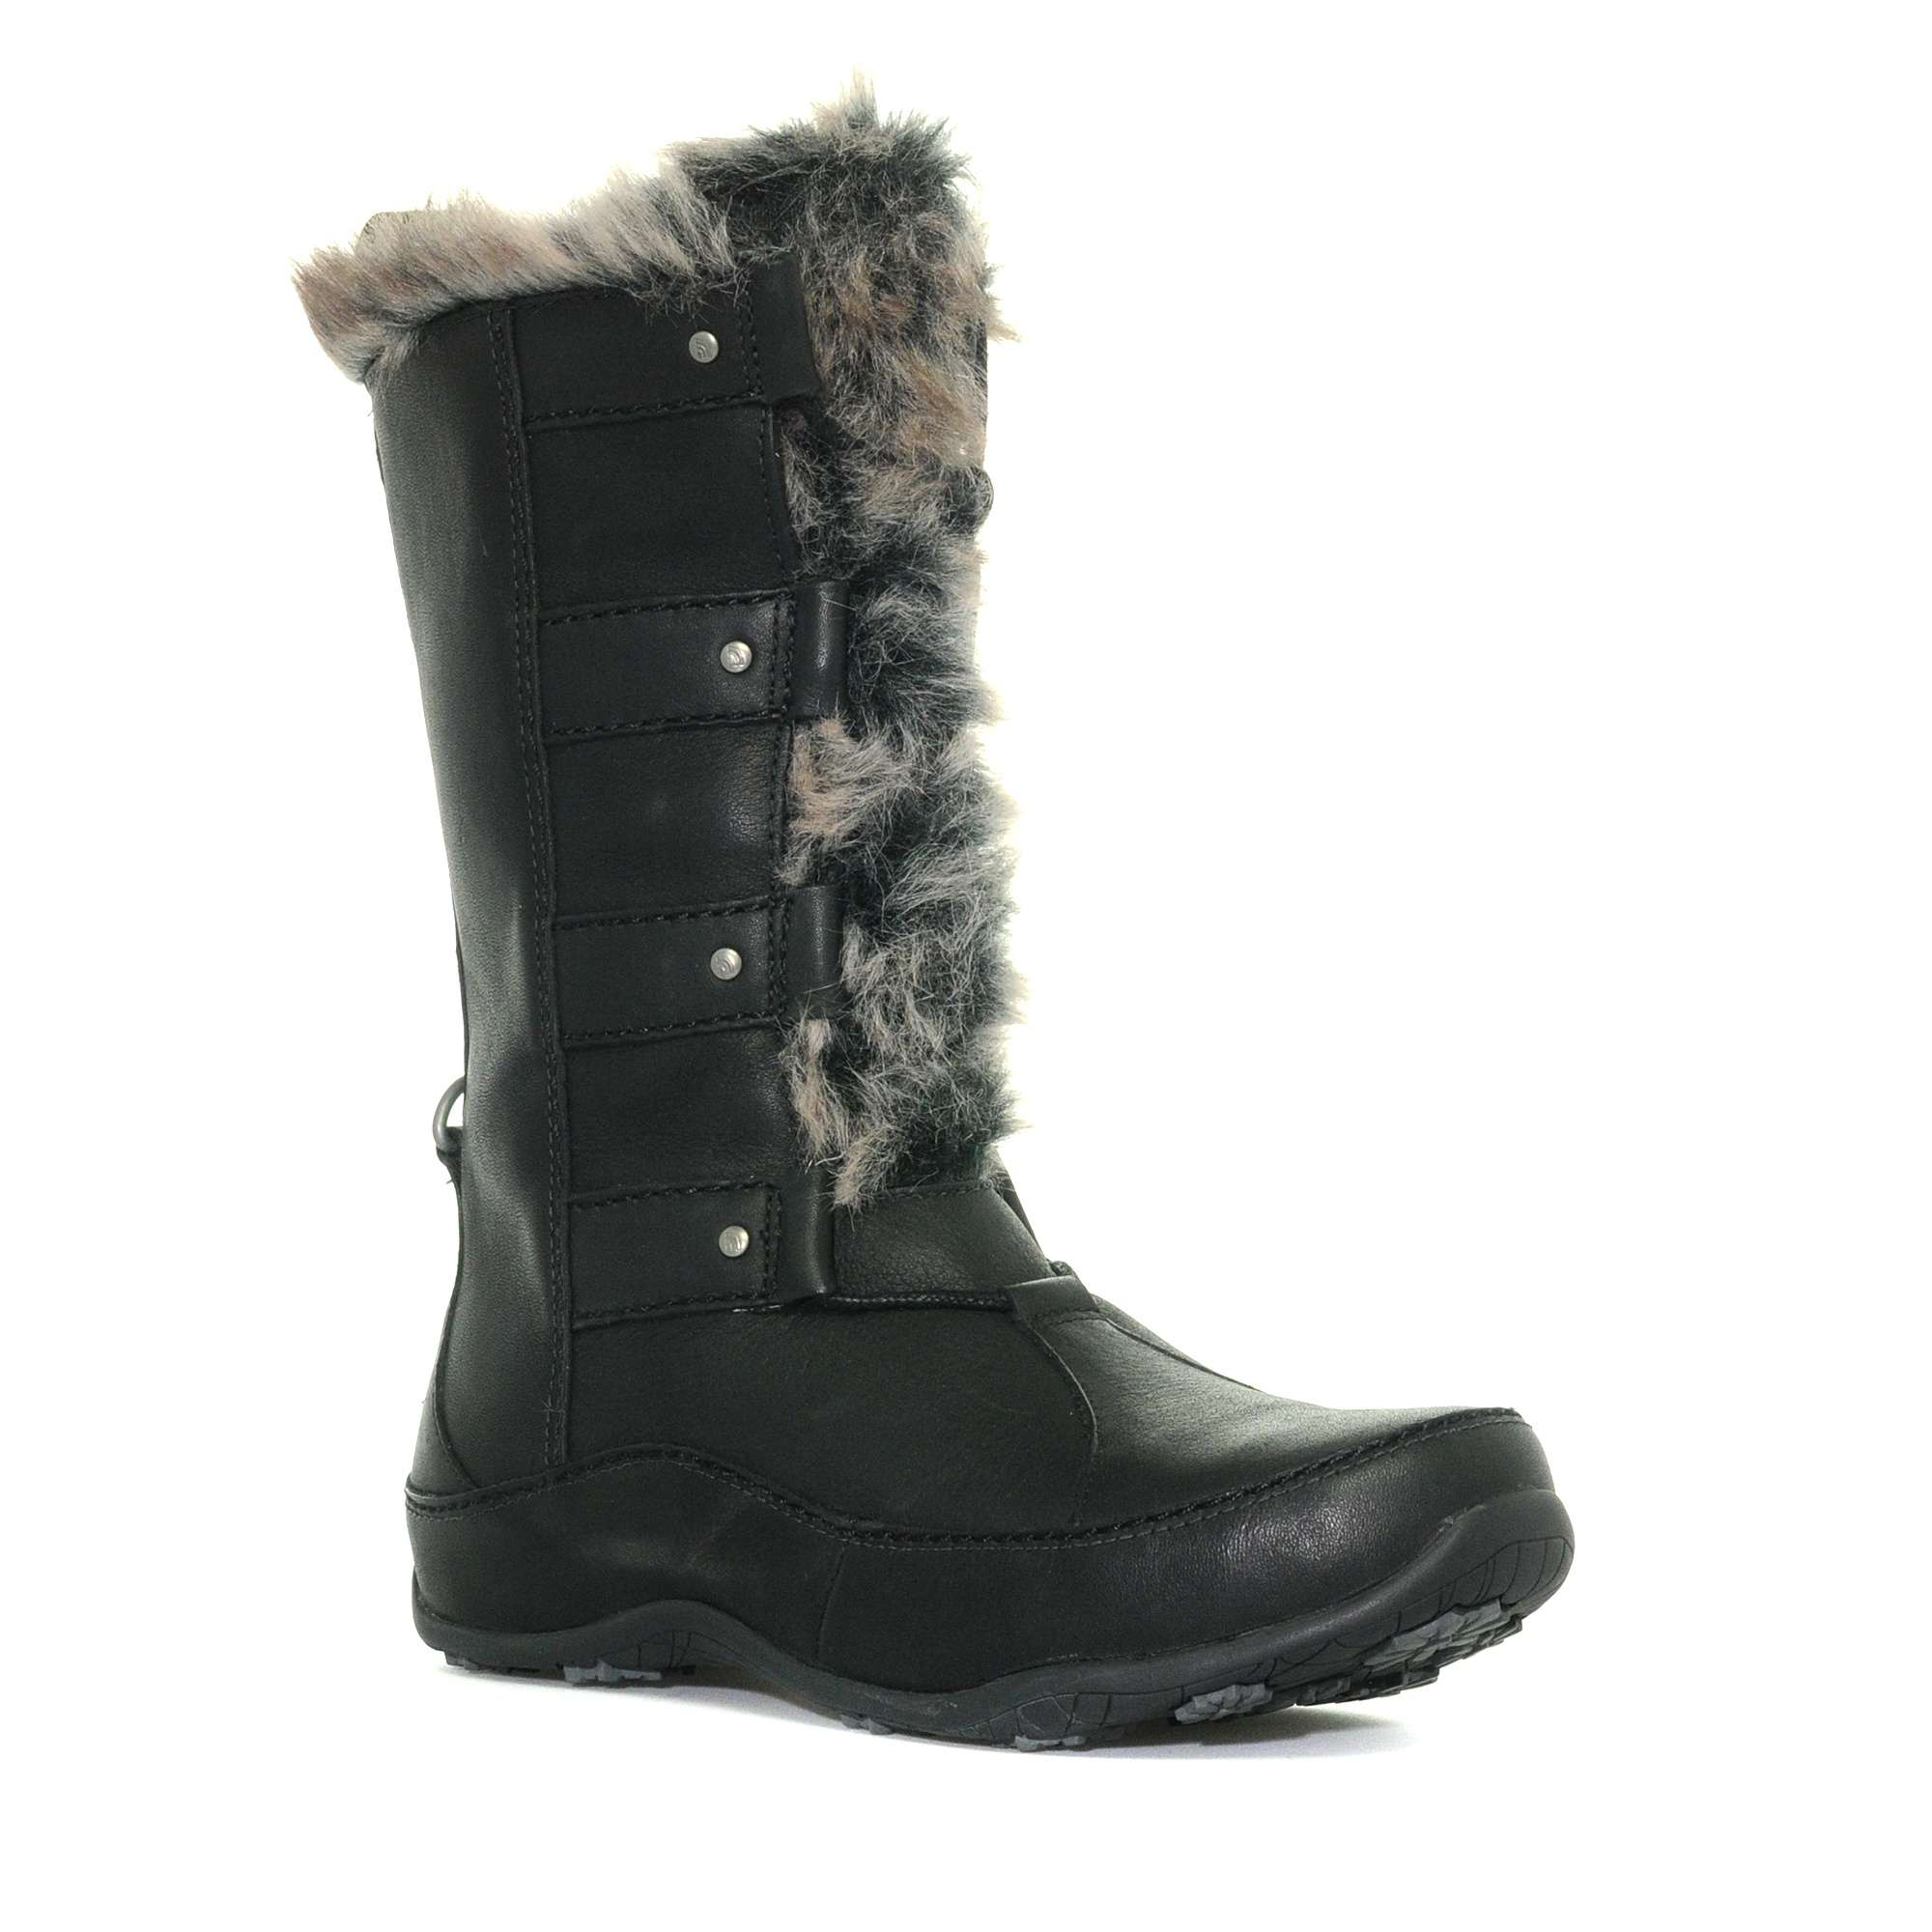 THE NORTH FACE Women's Abby IV Snow Boots